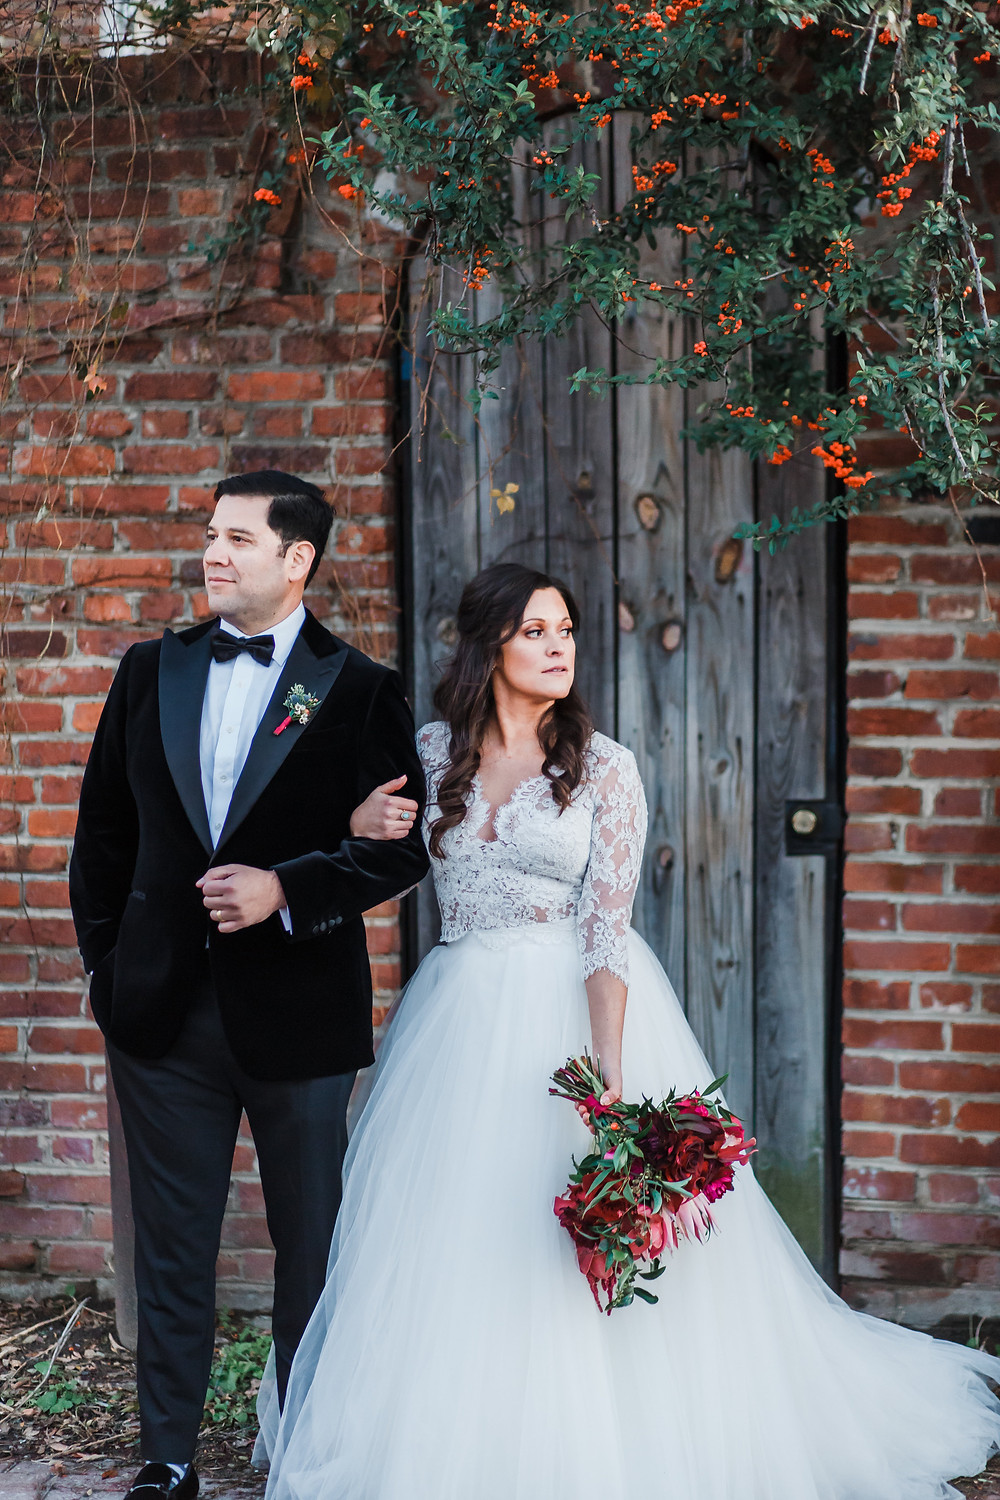 Rustic photoshoot with wooden door and bridal bouquet